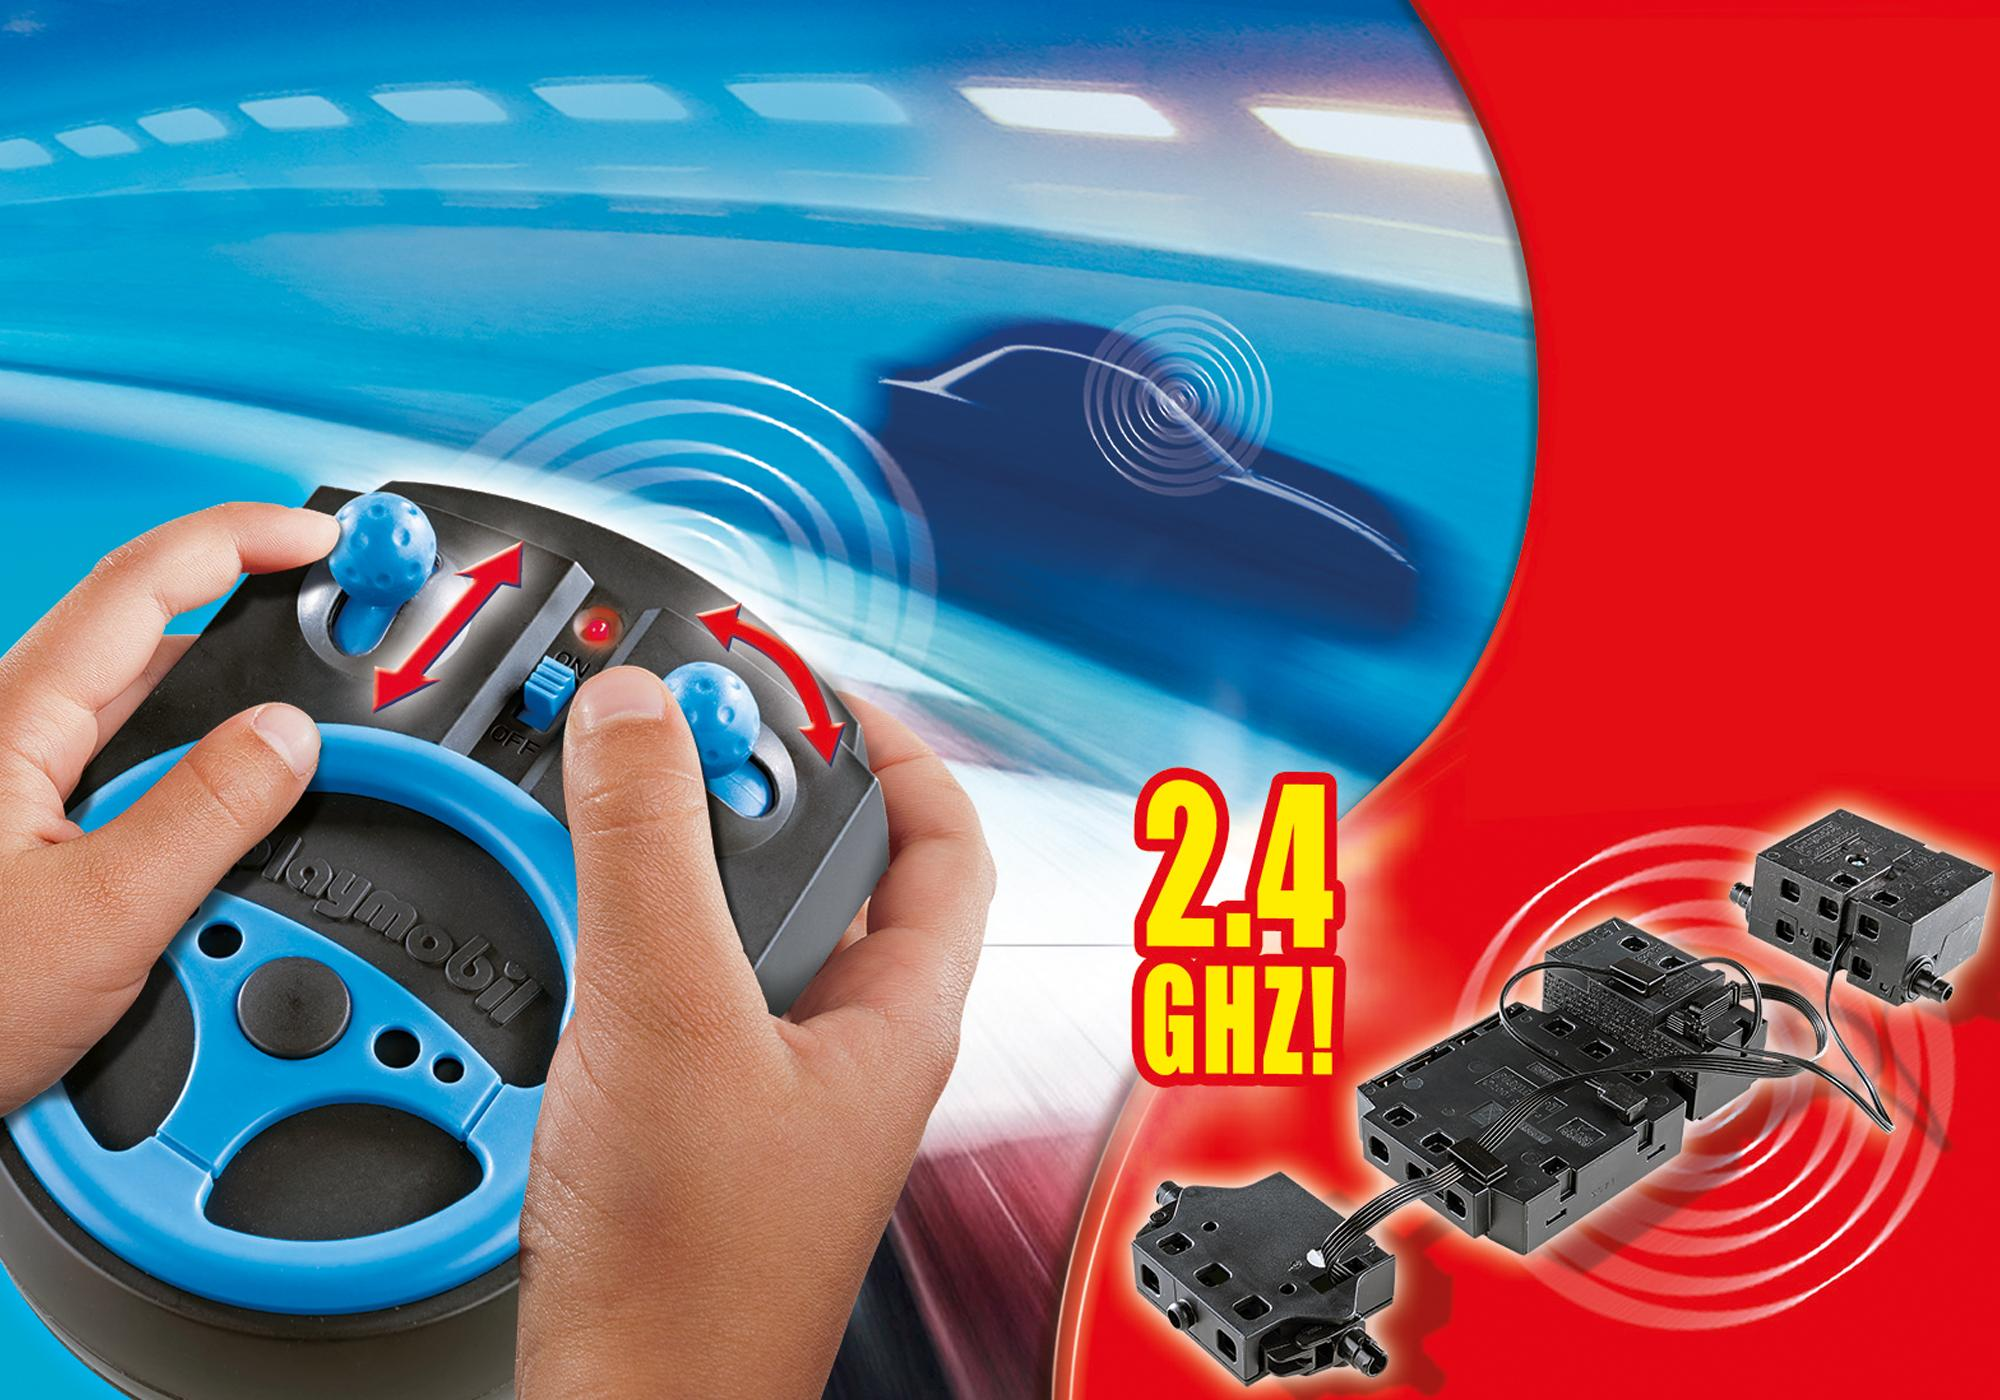 http://media.playmobil.com/i/playmobil/6914_product_detail/Remote Control Set 2.4GHz